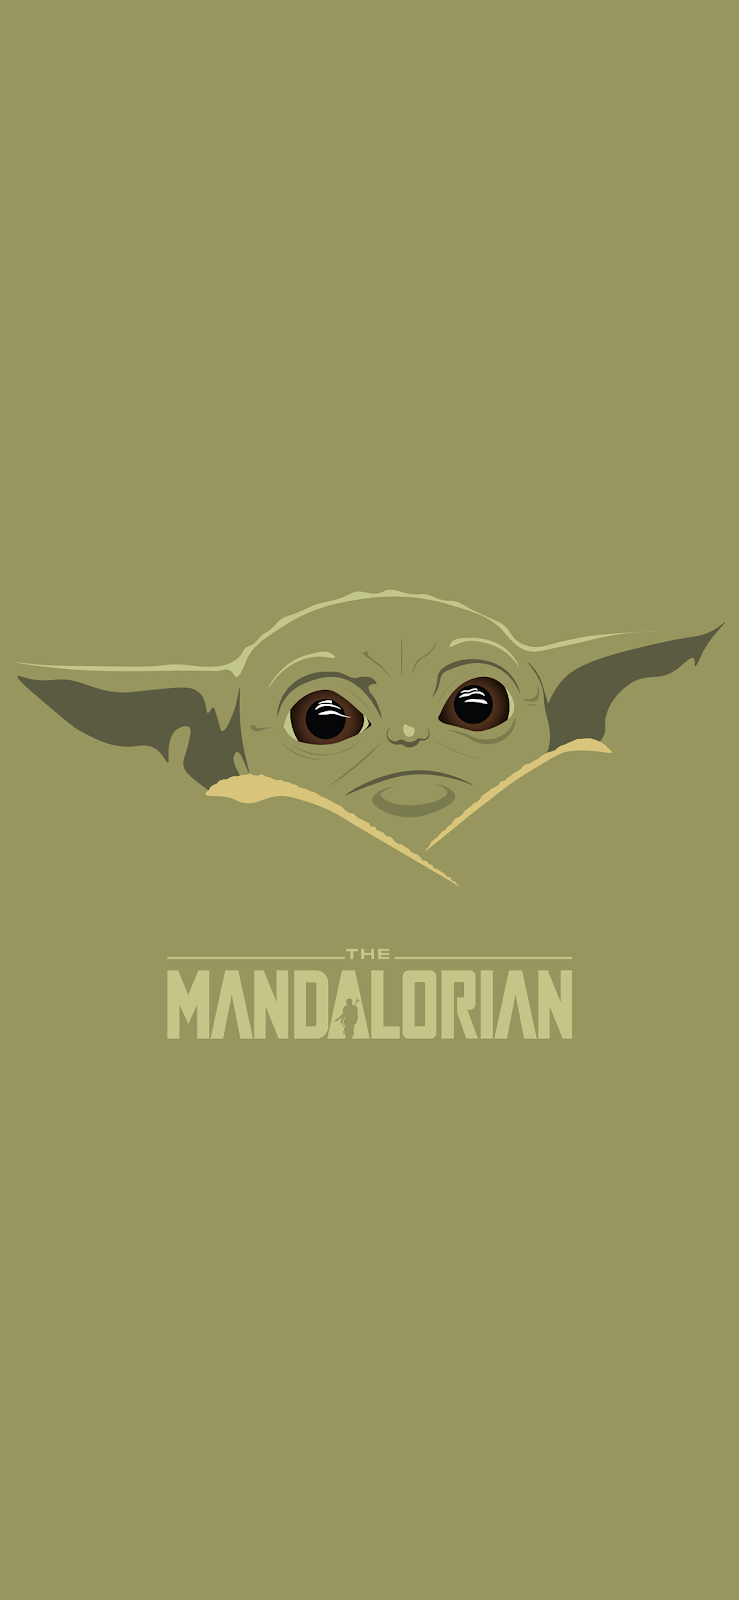 The Child Baby Yoda Phone Wallpaper Collection Cool Wallpapers Heroscreen Cc Yoda Wallpaper Star Wars Wallpaper Star Wars Wallpaper Iphone